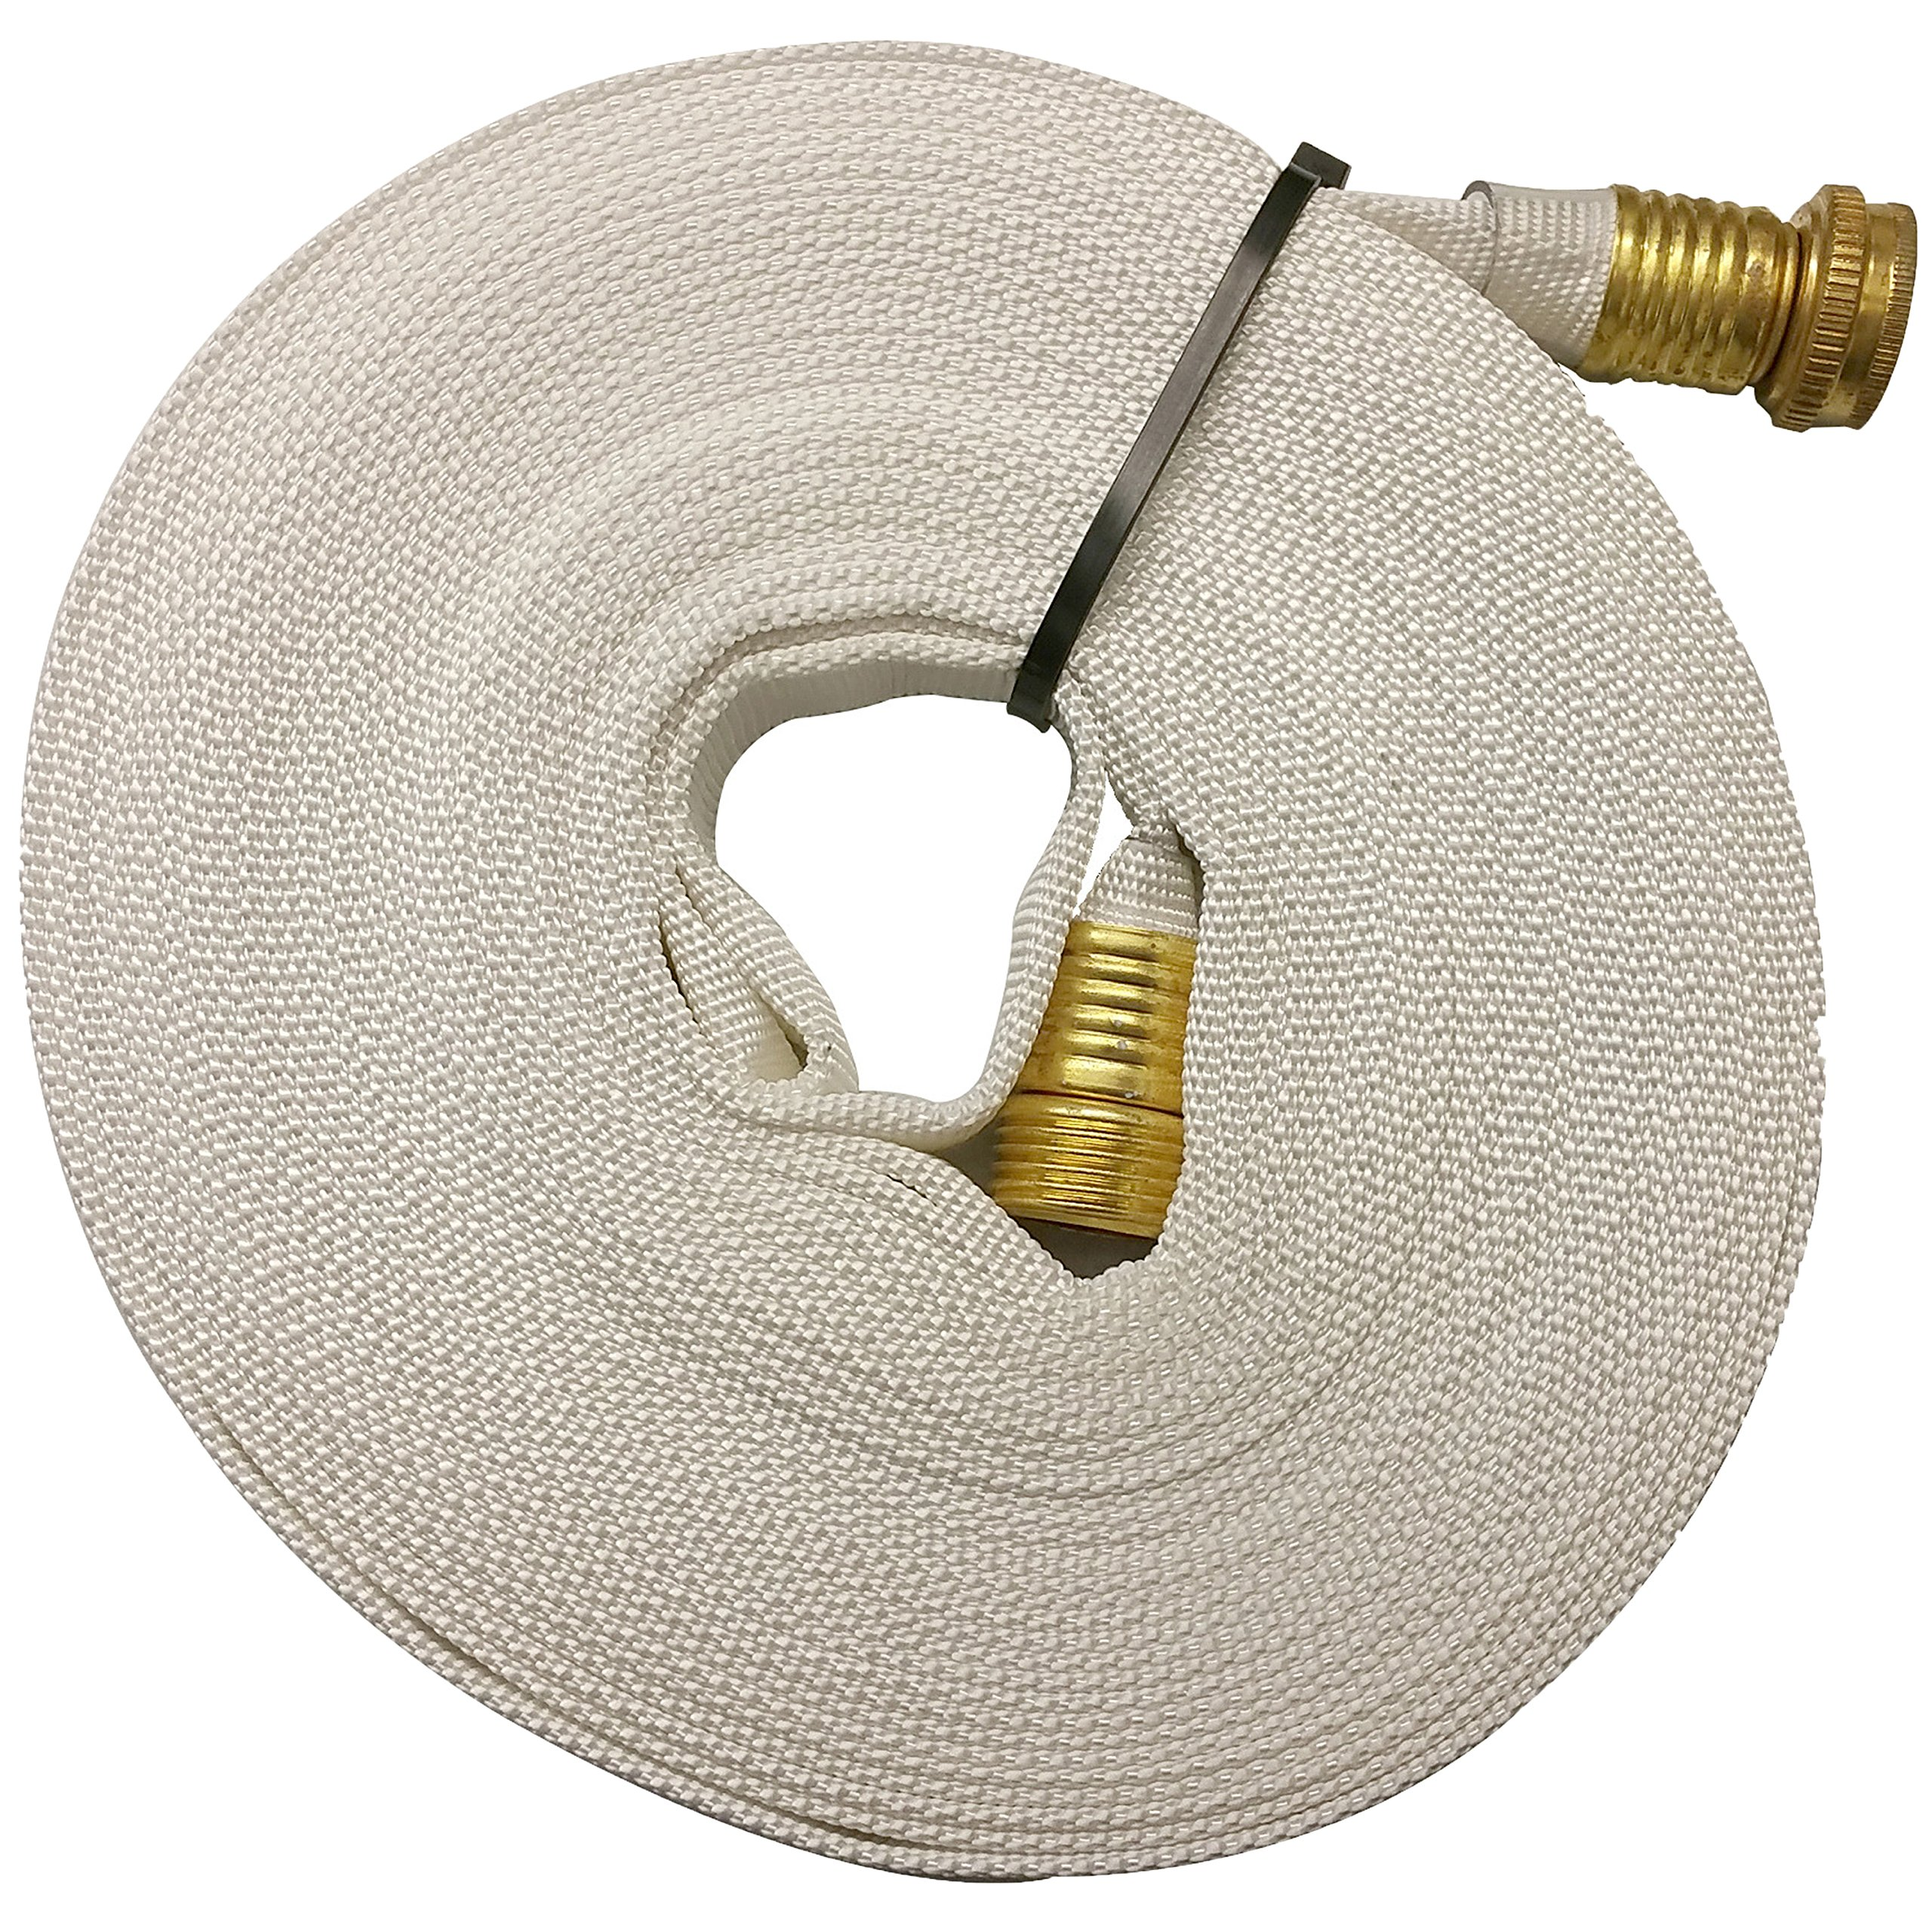 Key Fire 017-FF058-450 Polyester/Polyurethane/Brass/Plastic/Rubber 1061 Pencil Line Lay Flat Garden Hose, GHT Connection, 300 psi Maximum Pressure, 50' Length, 5/8''